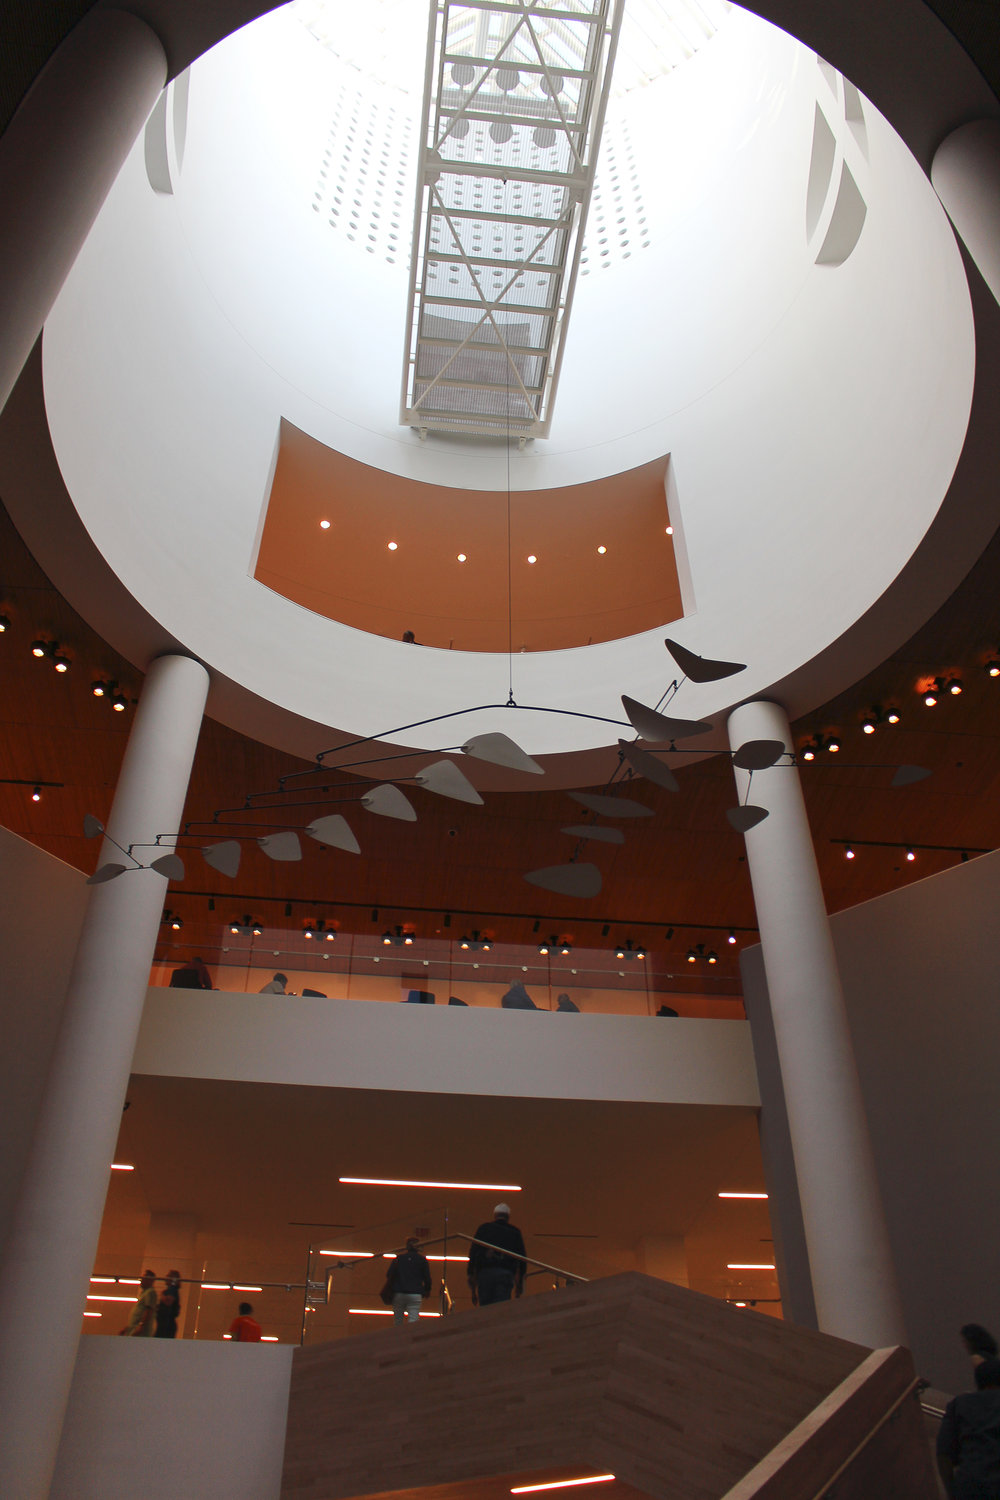 Alexander Calder in the entry of the SFMOMA